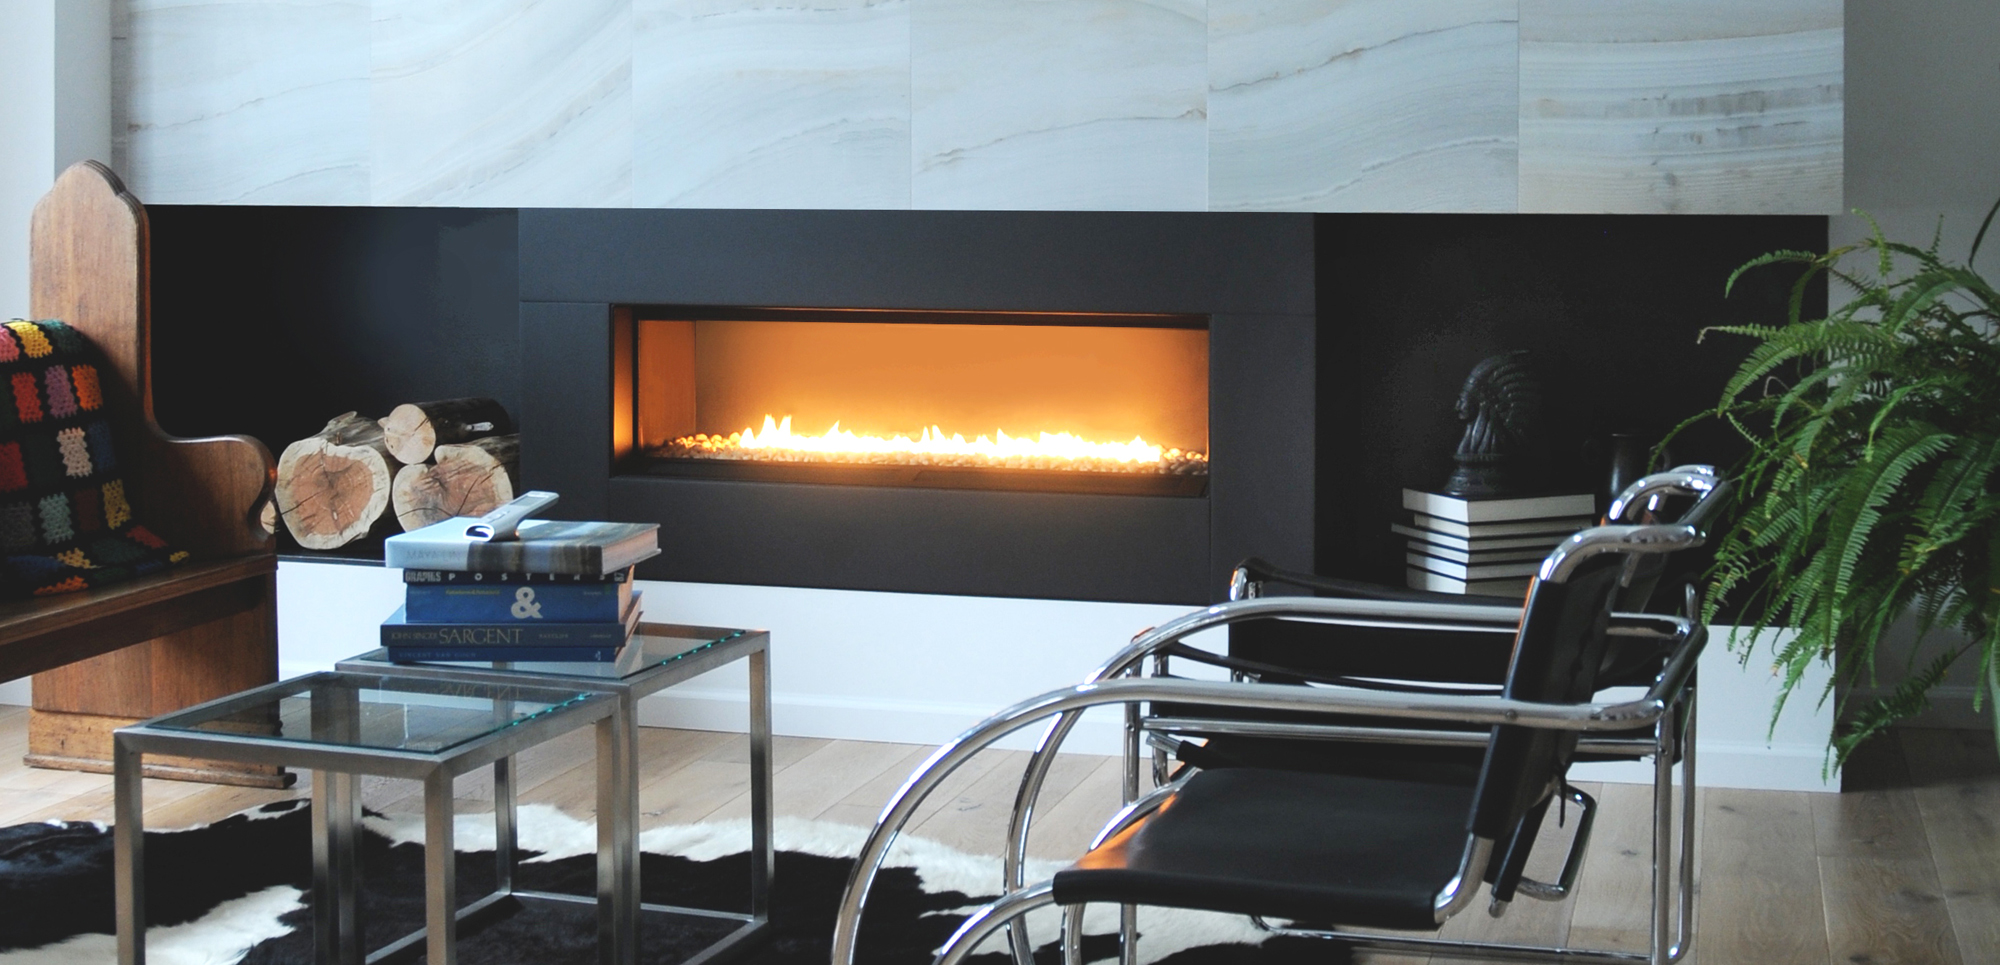 Spark Modern Fires - Spark Modern Fires offers the best selection ...